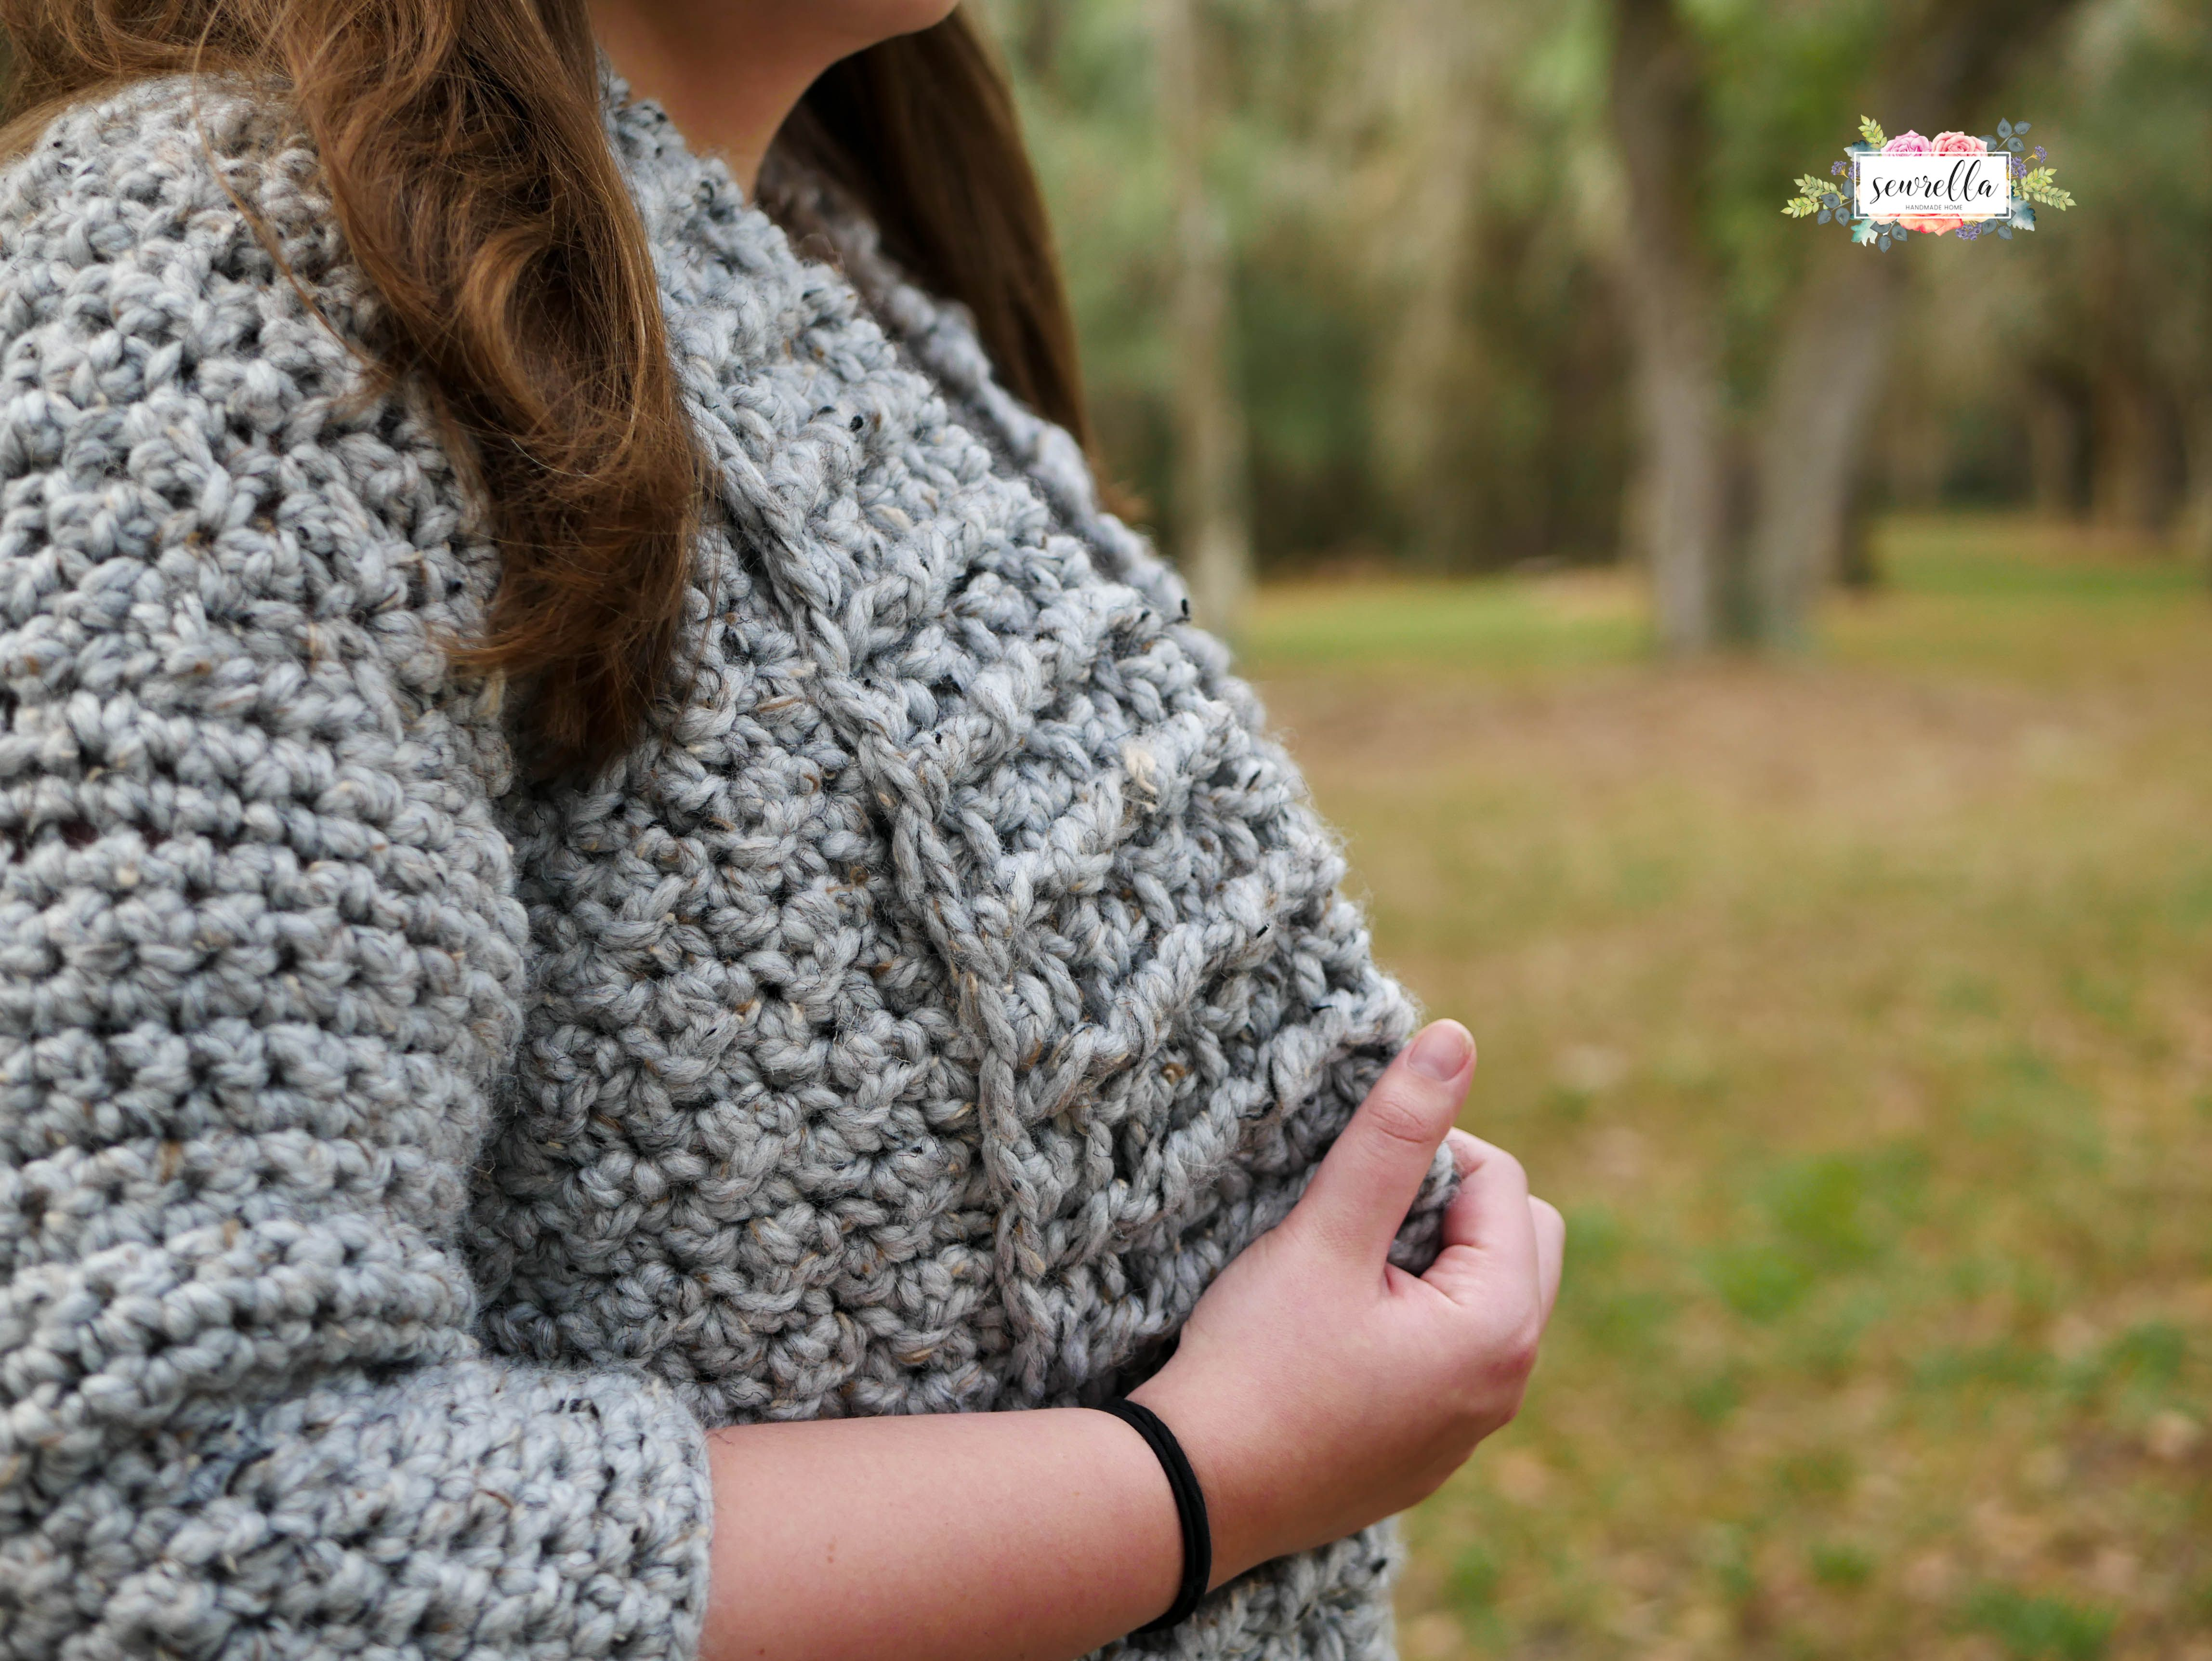 c21c4cce5 First Love Crochet Cardigan Pattern from Sewrella